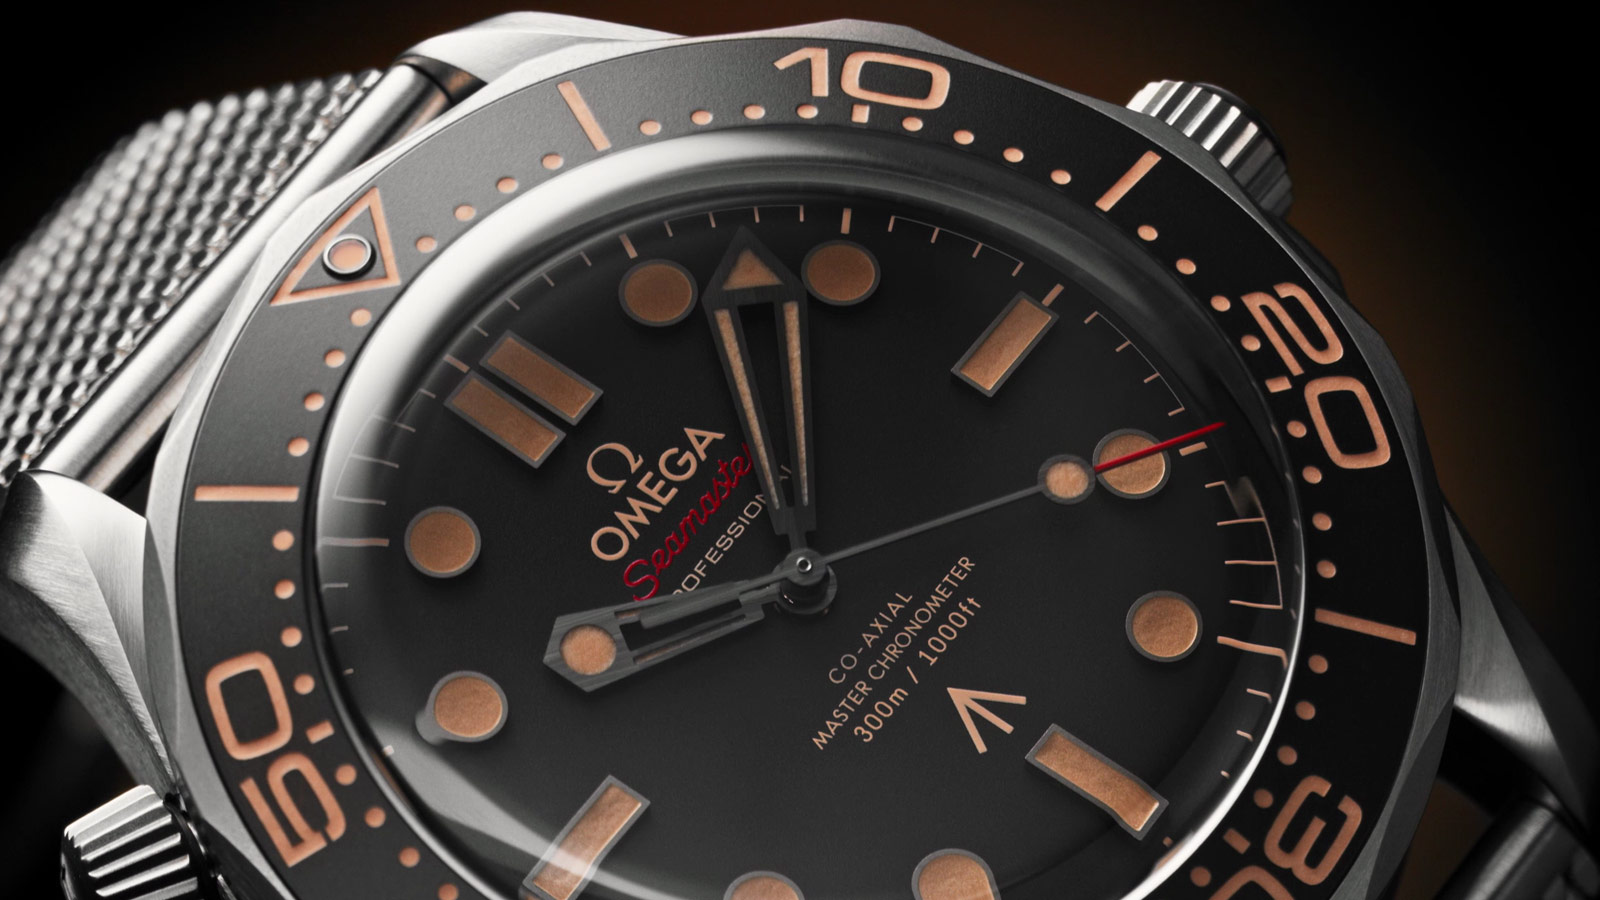 OMEGA® Swiss Luxury Watches Since 1848 - Video - 79118